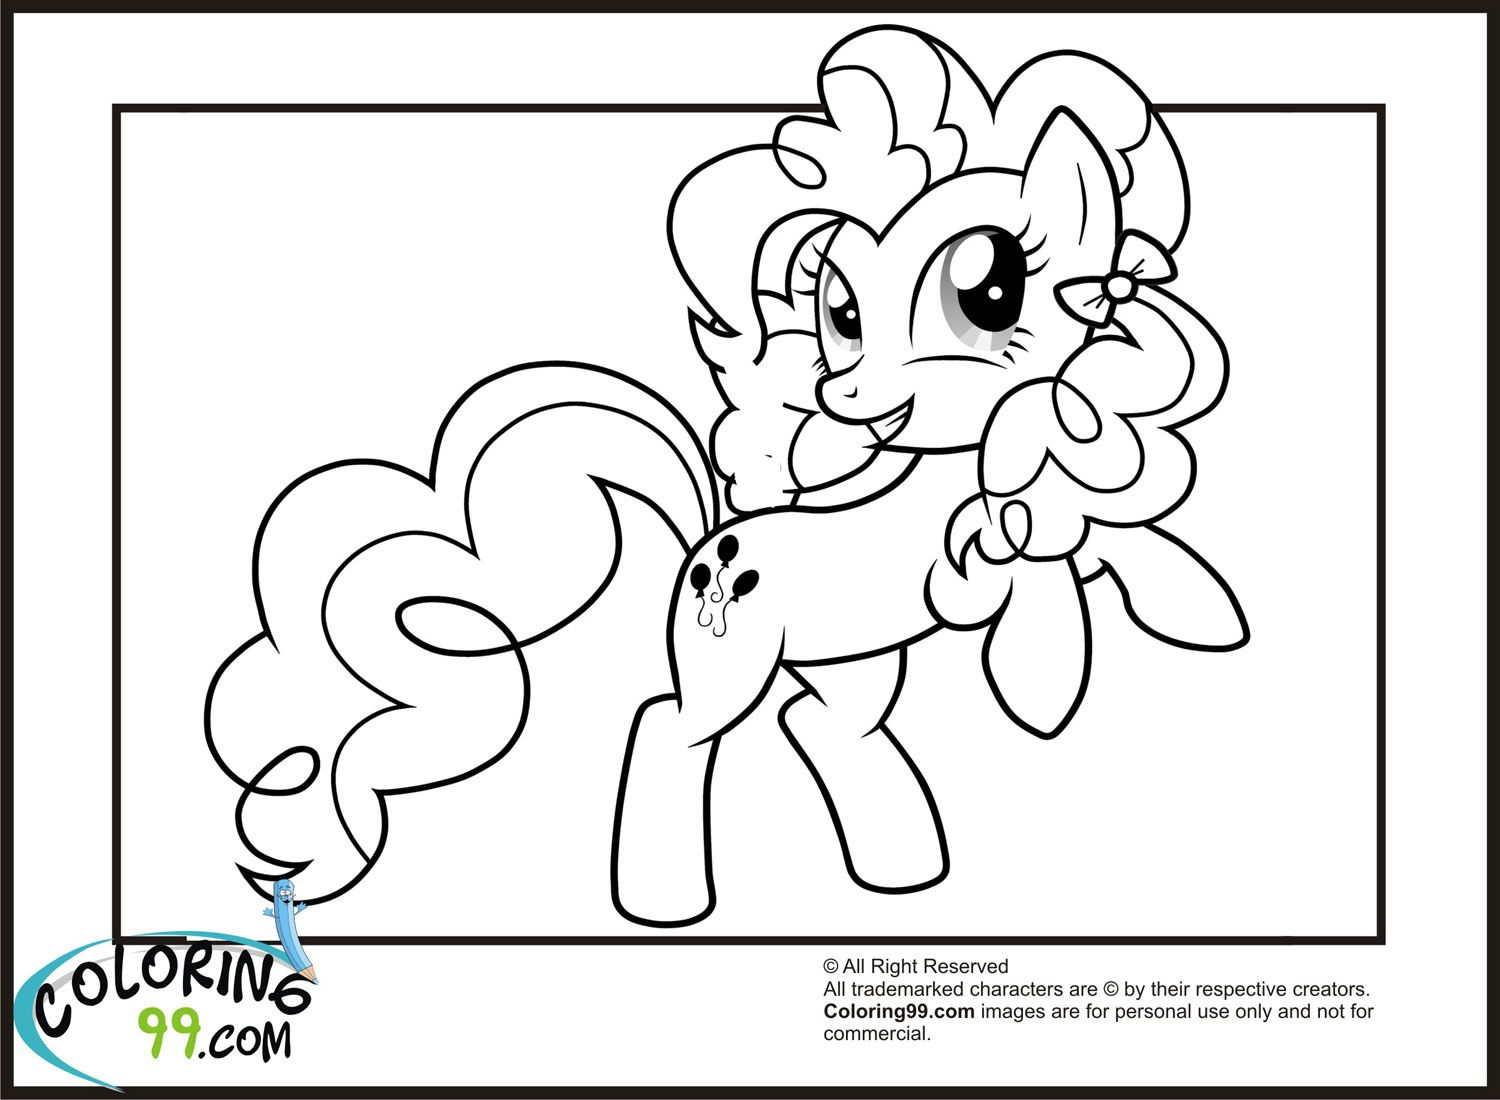 Mlp Pinkie Pie Smiling Coloring Pages Jpg 1500 1100 Coloring 4